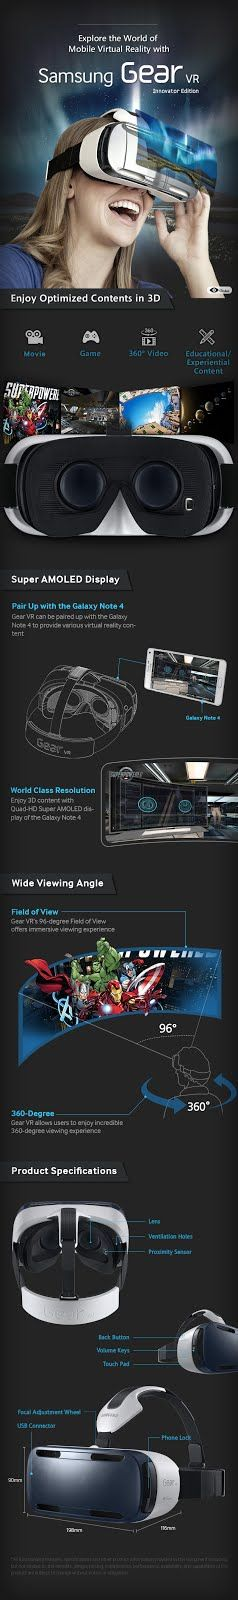 [Infographic] Gear VR a virtual reality headset with world class resolution and performance